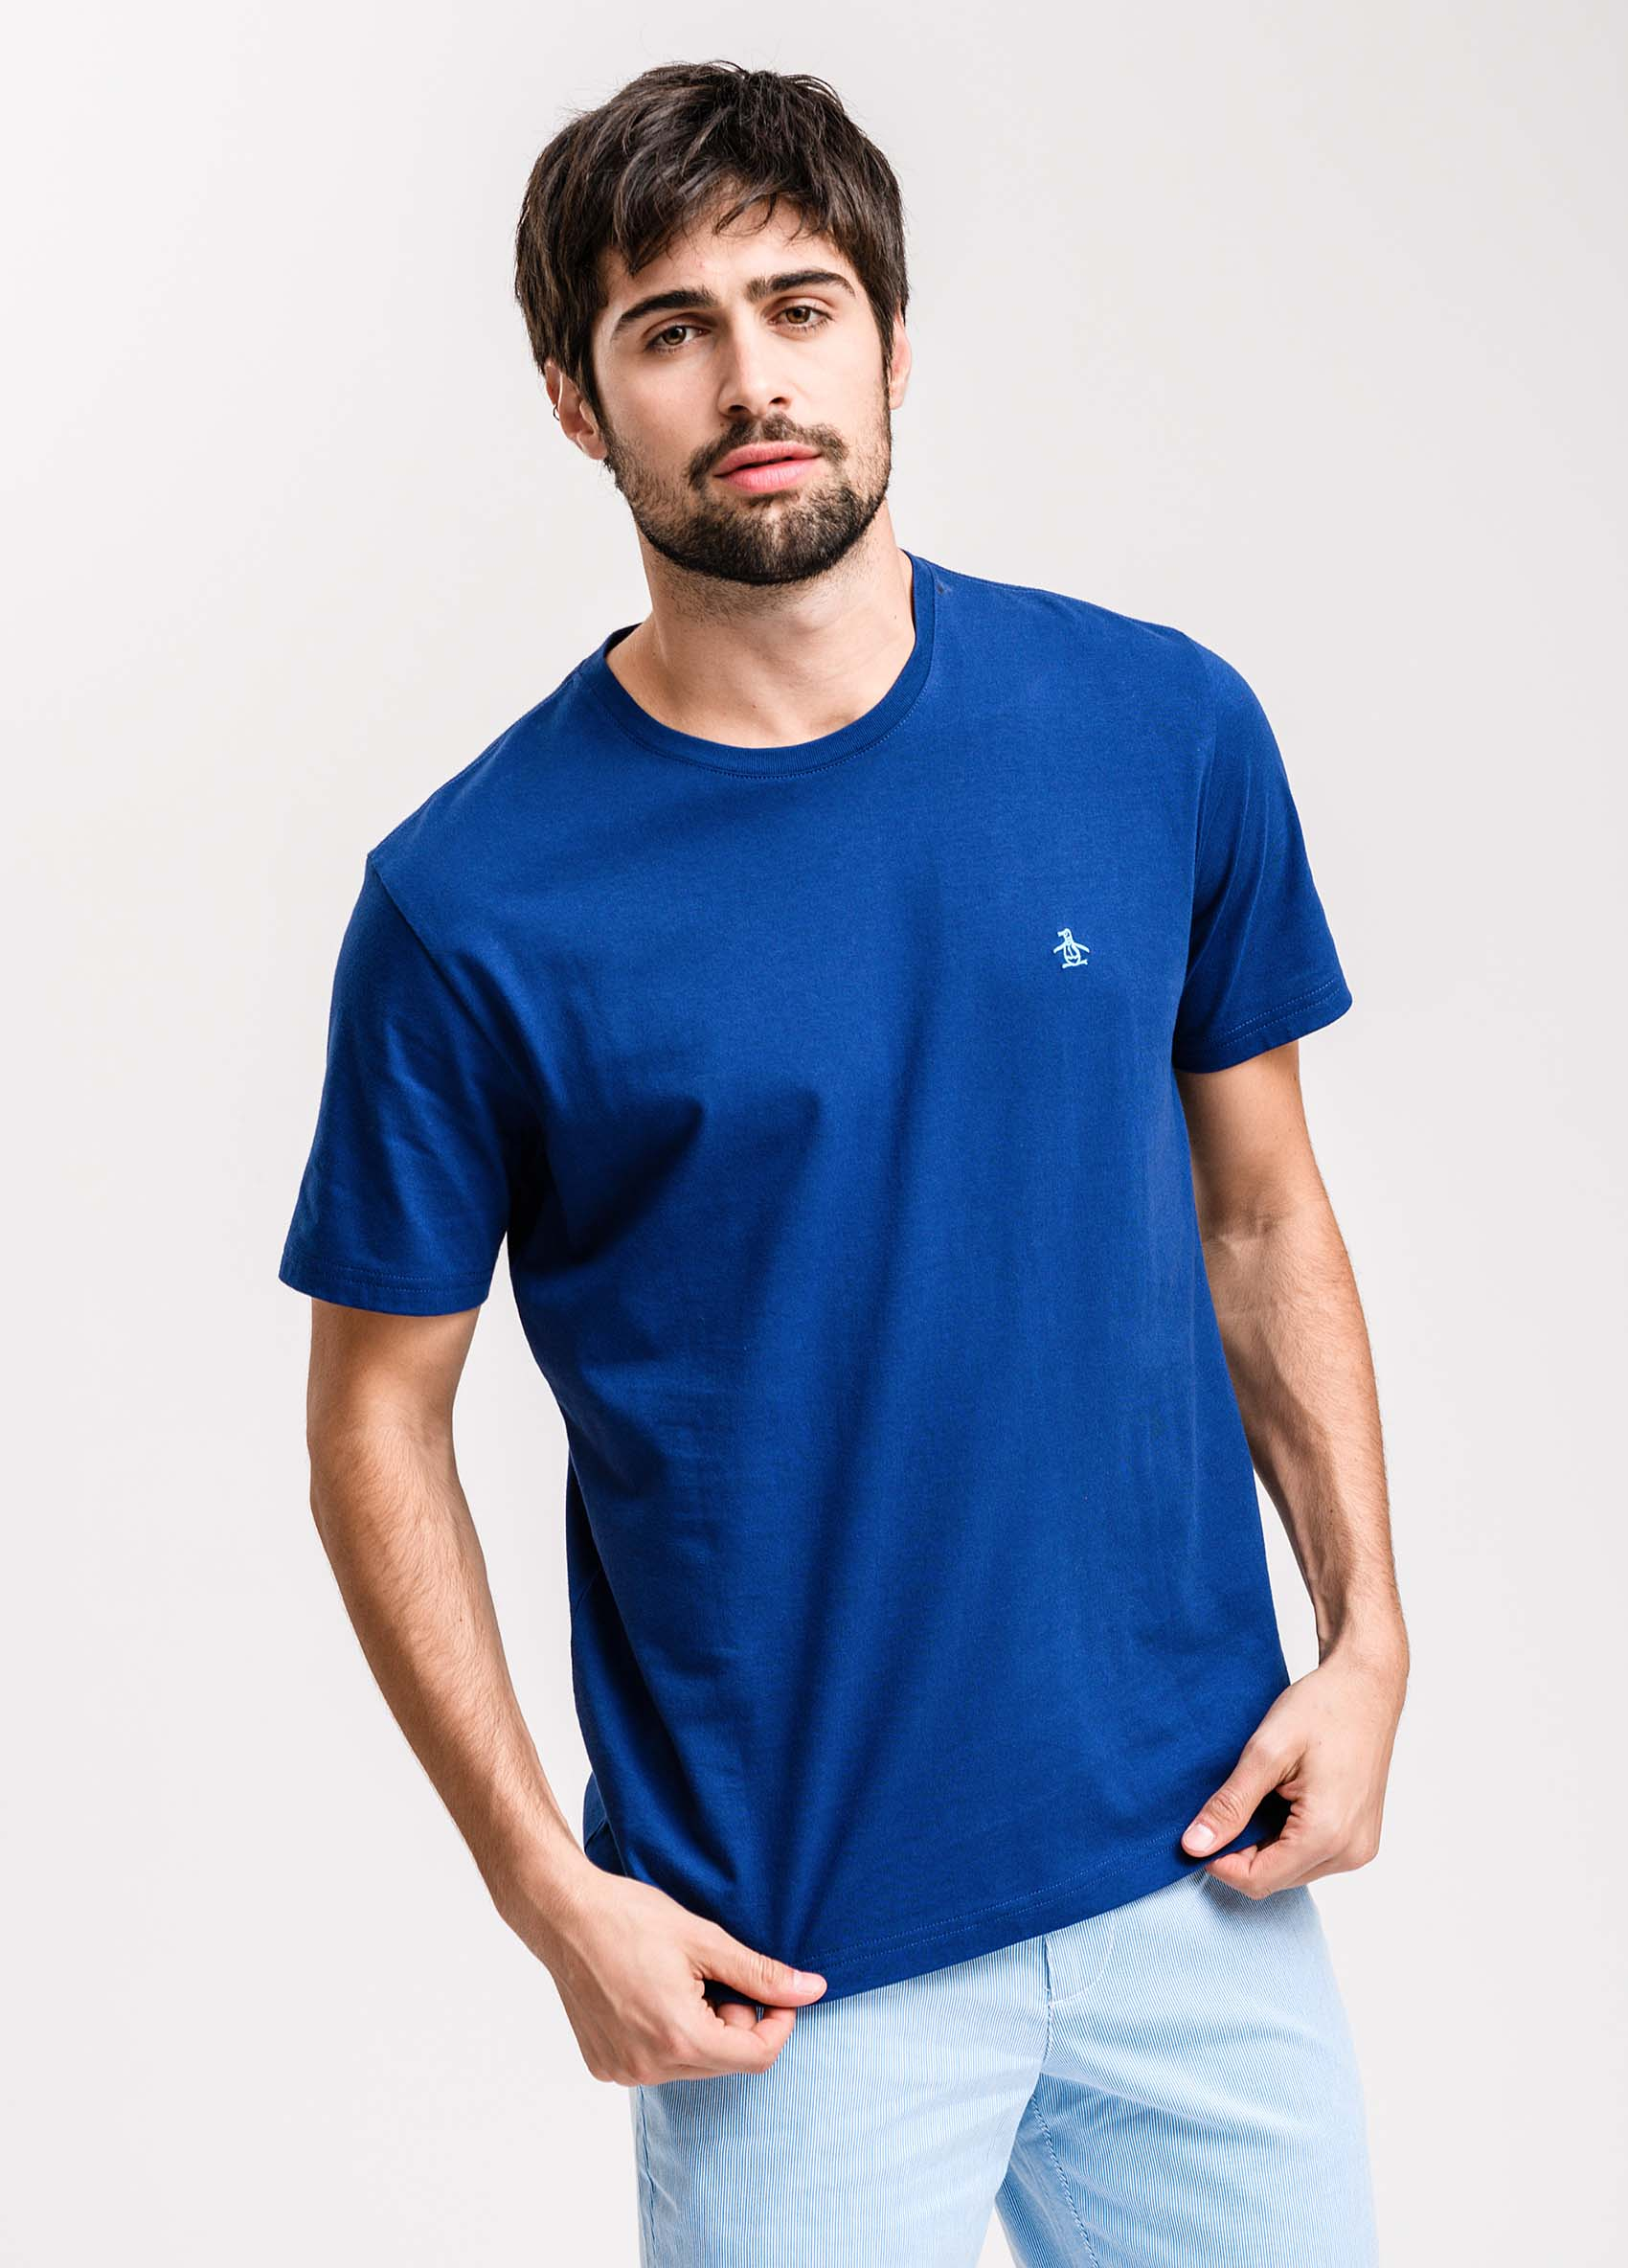 penguin_remera-basic-tee_29-26-2018__picture-2587